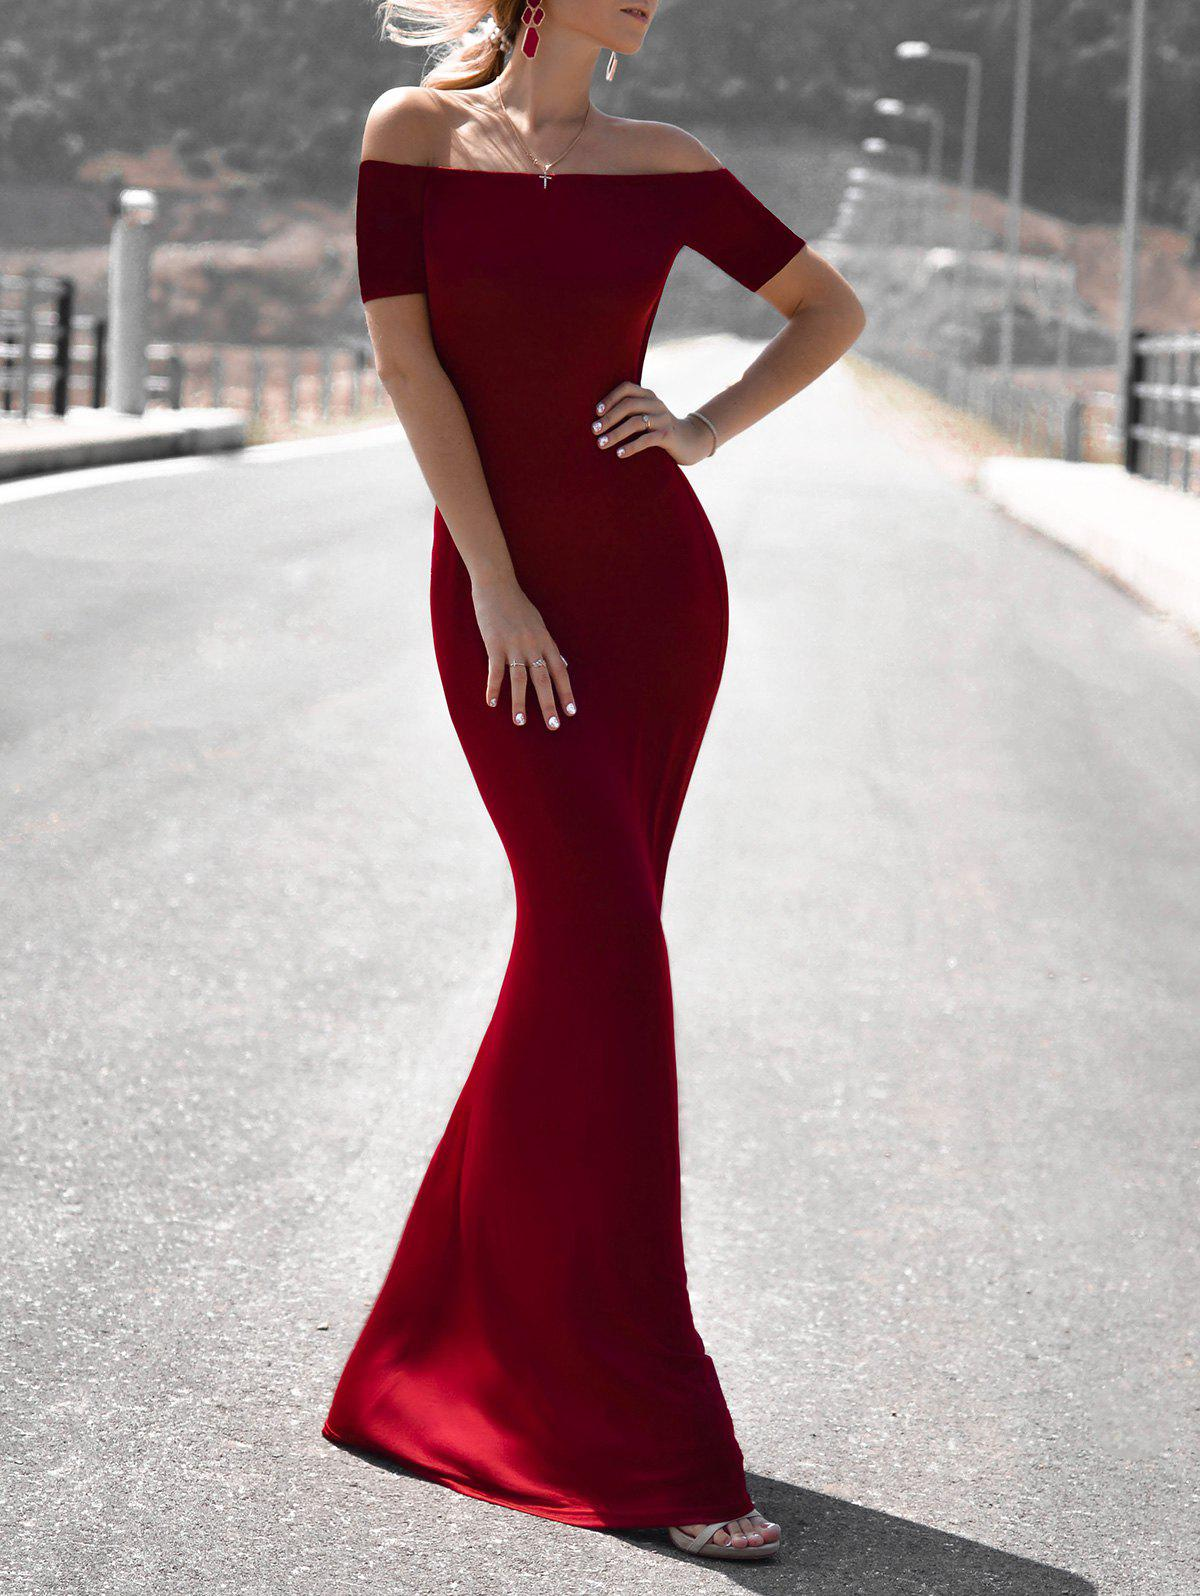 Women's Chic 3/4 Sleeve Off-The-Shoulder Pure Color Maxi Dress - WINE RED M